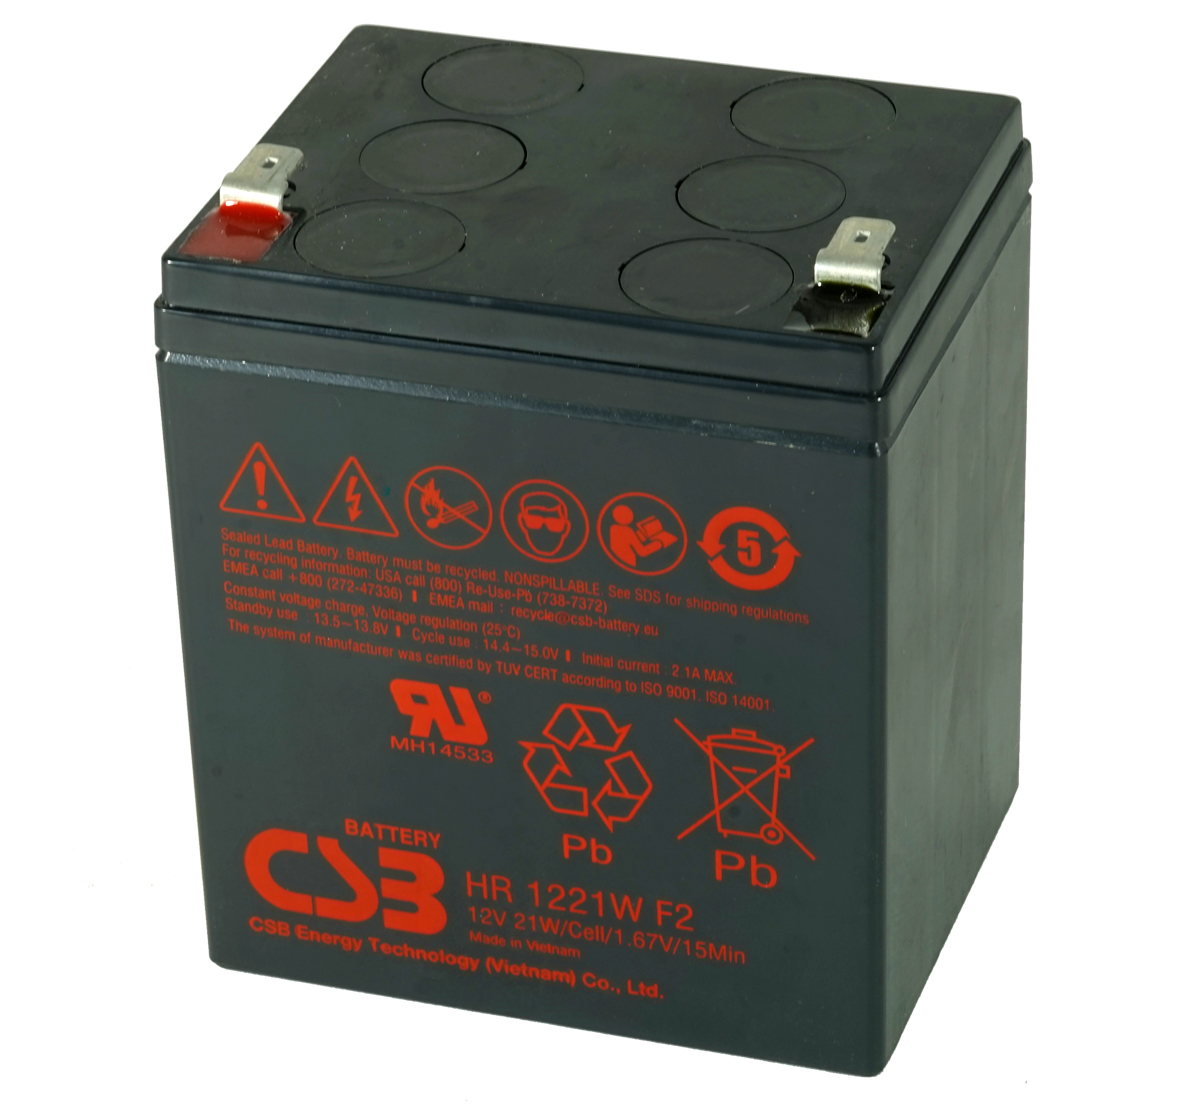 MDS2531 UPS Battery Kit for MGE AB2531